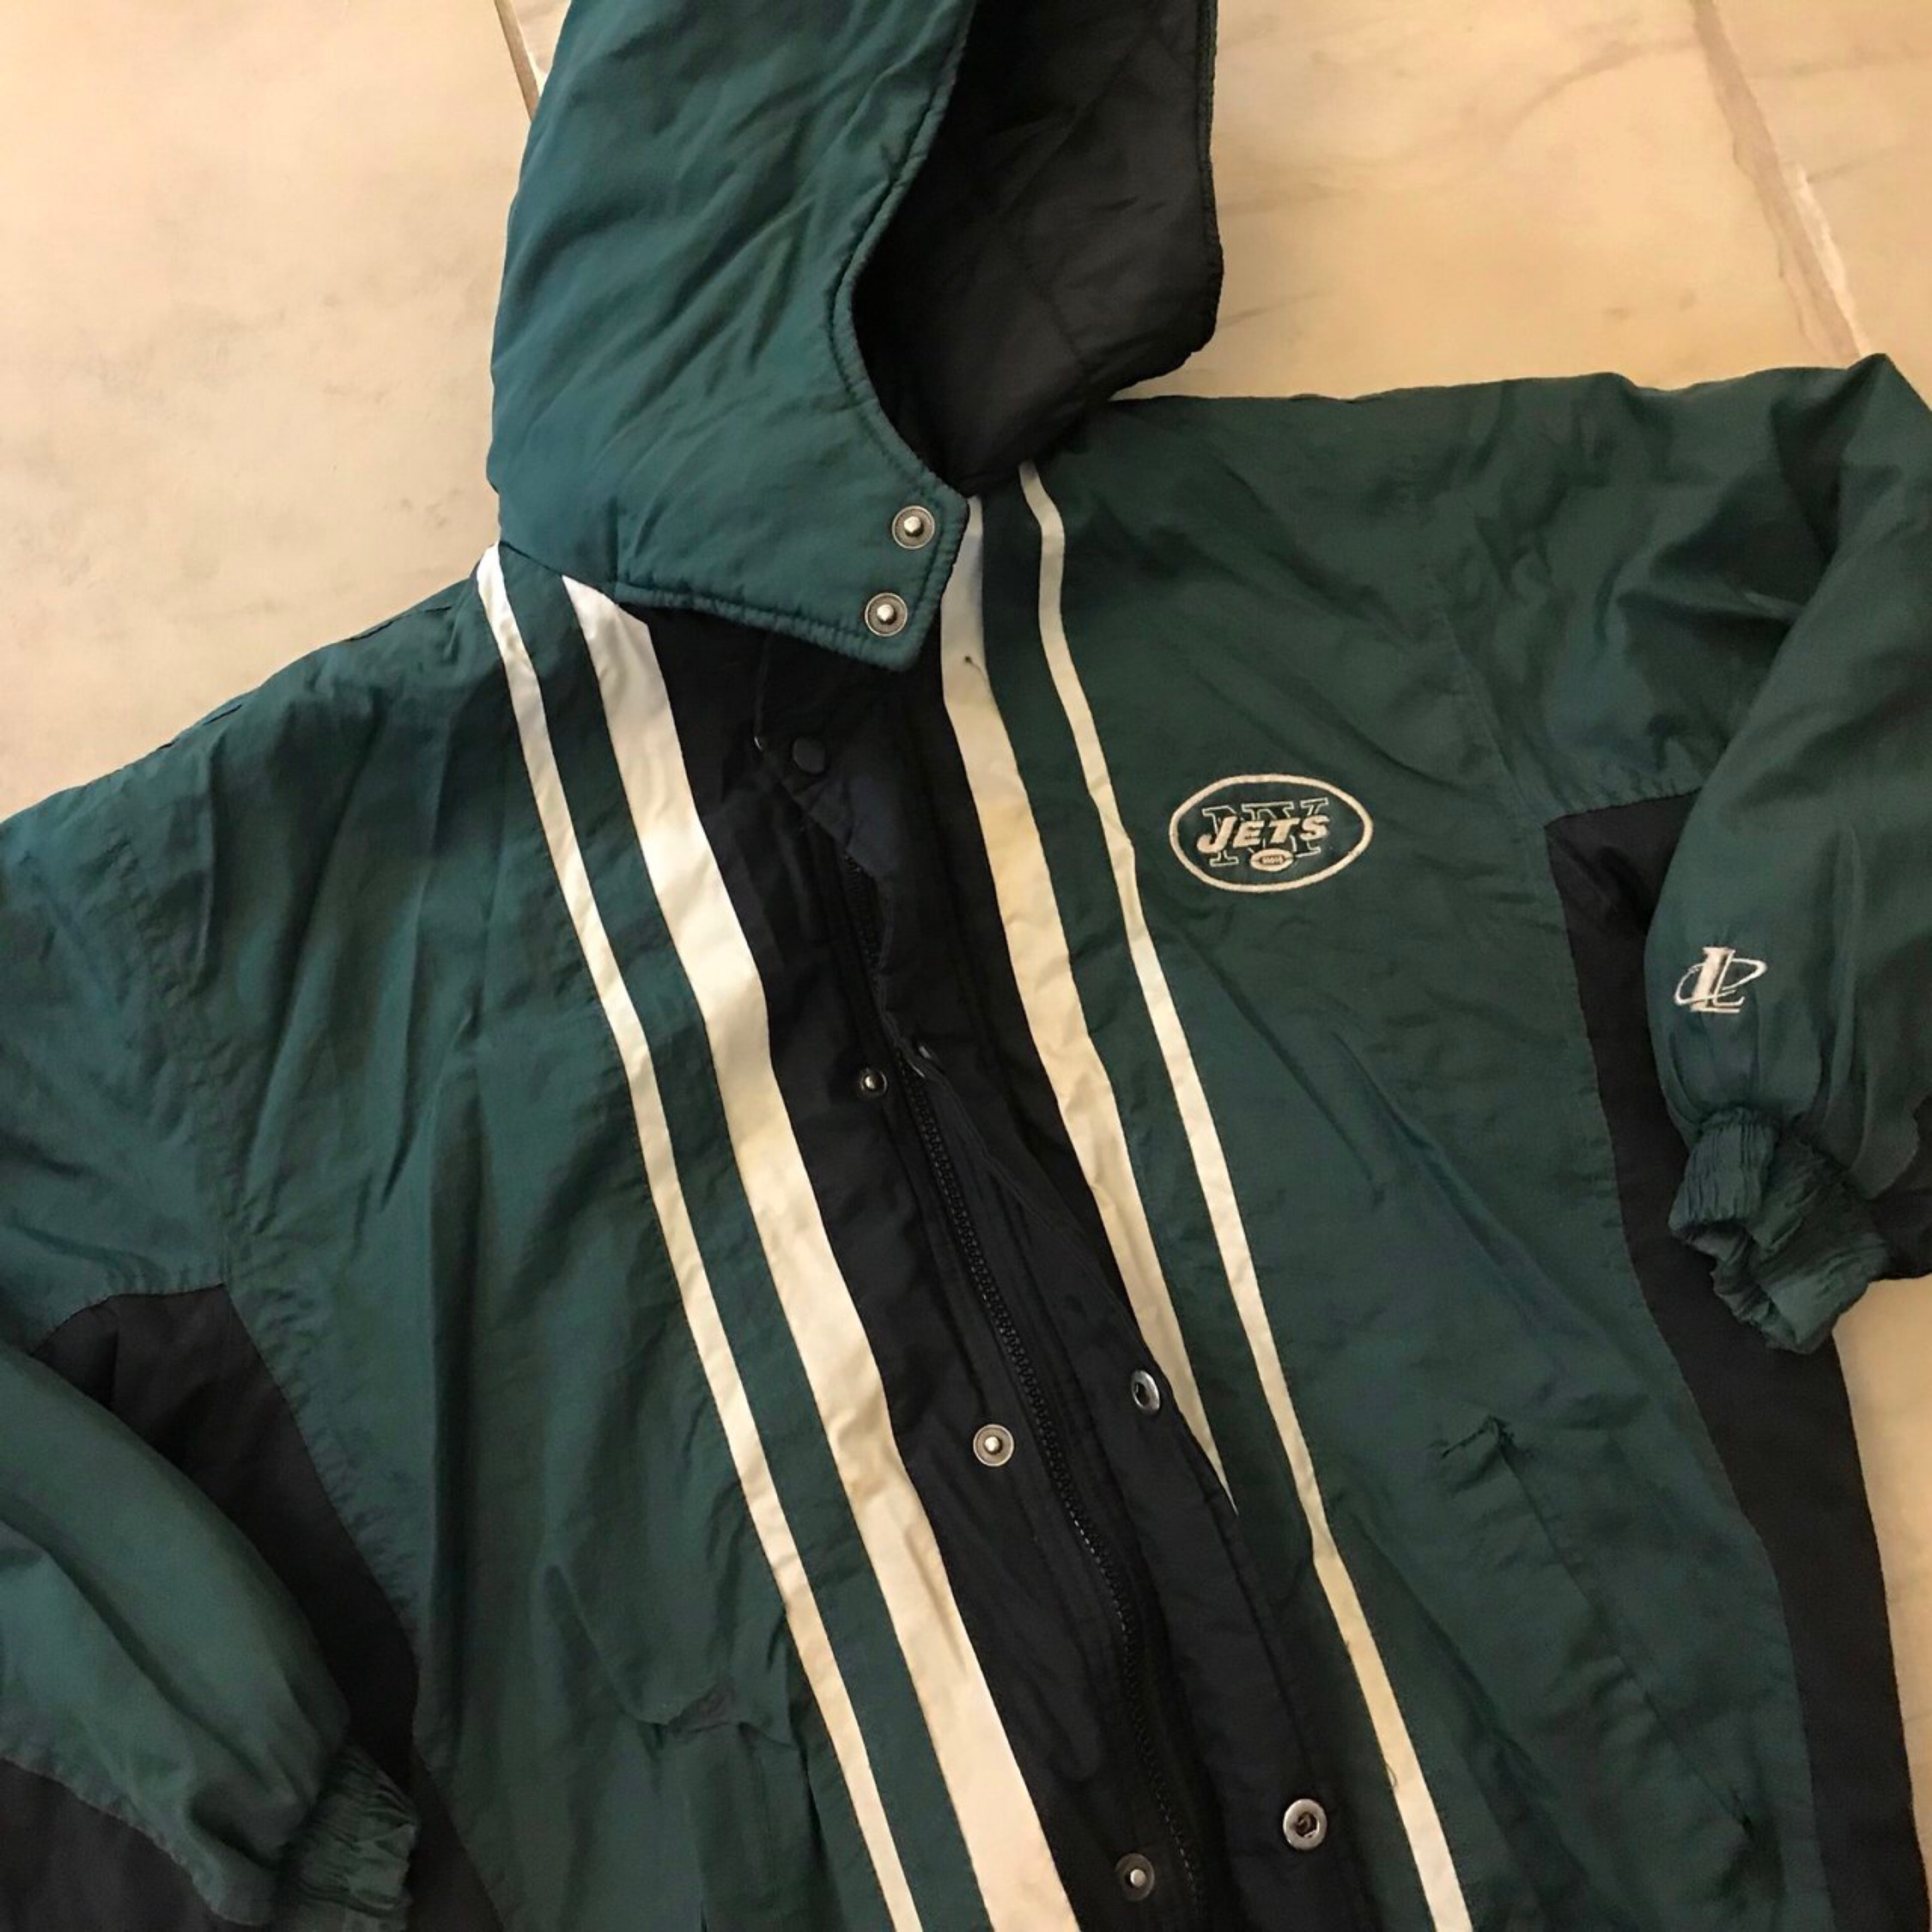 reputable site 57e18 b8ab8 Vintage Nfl New You're Jets Puffer Jacket